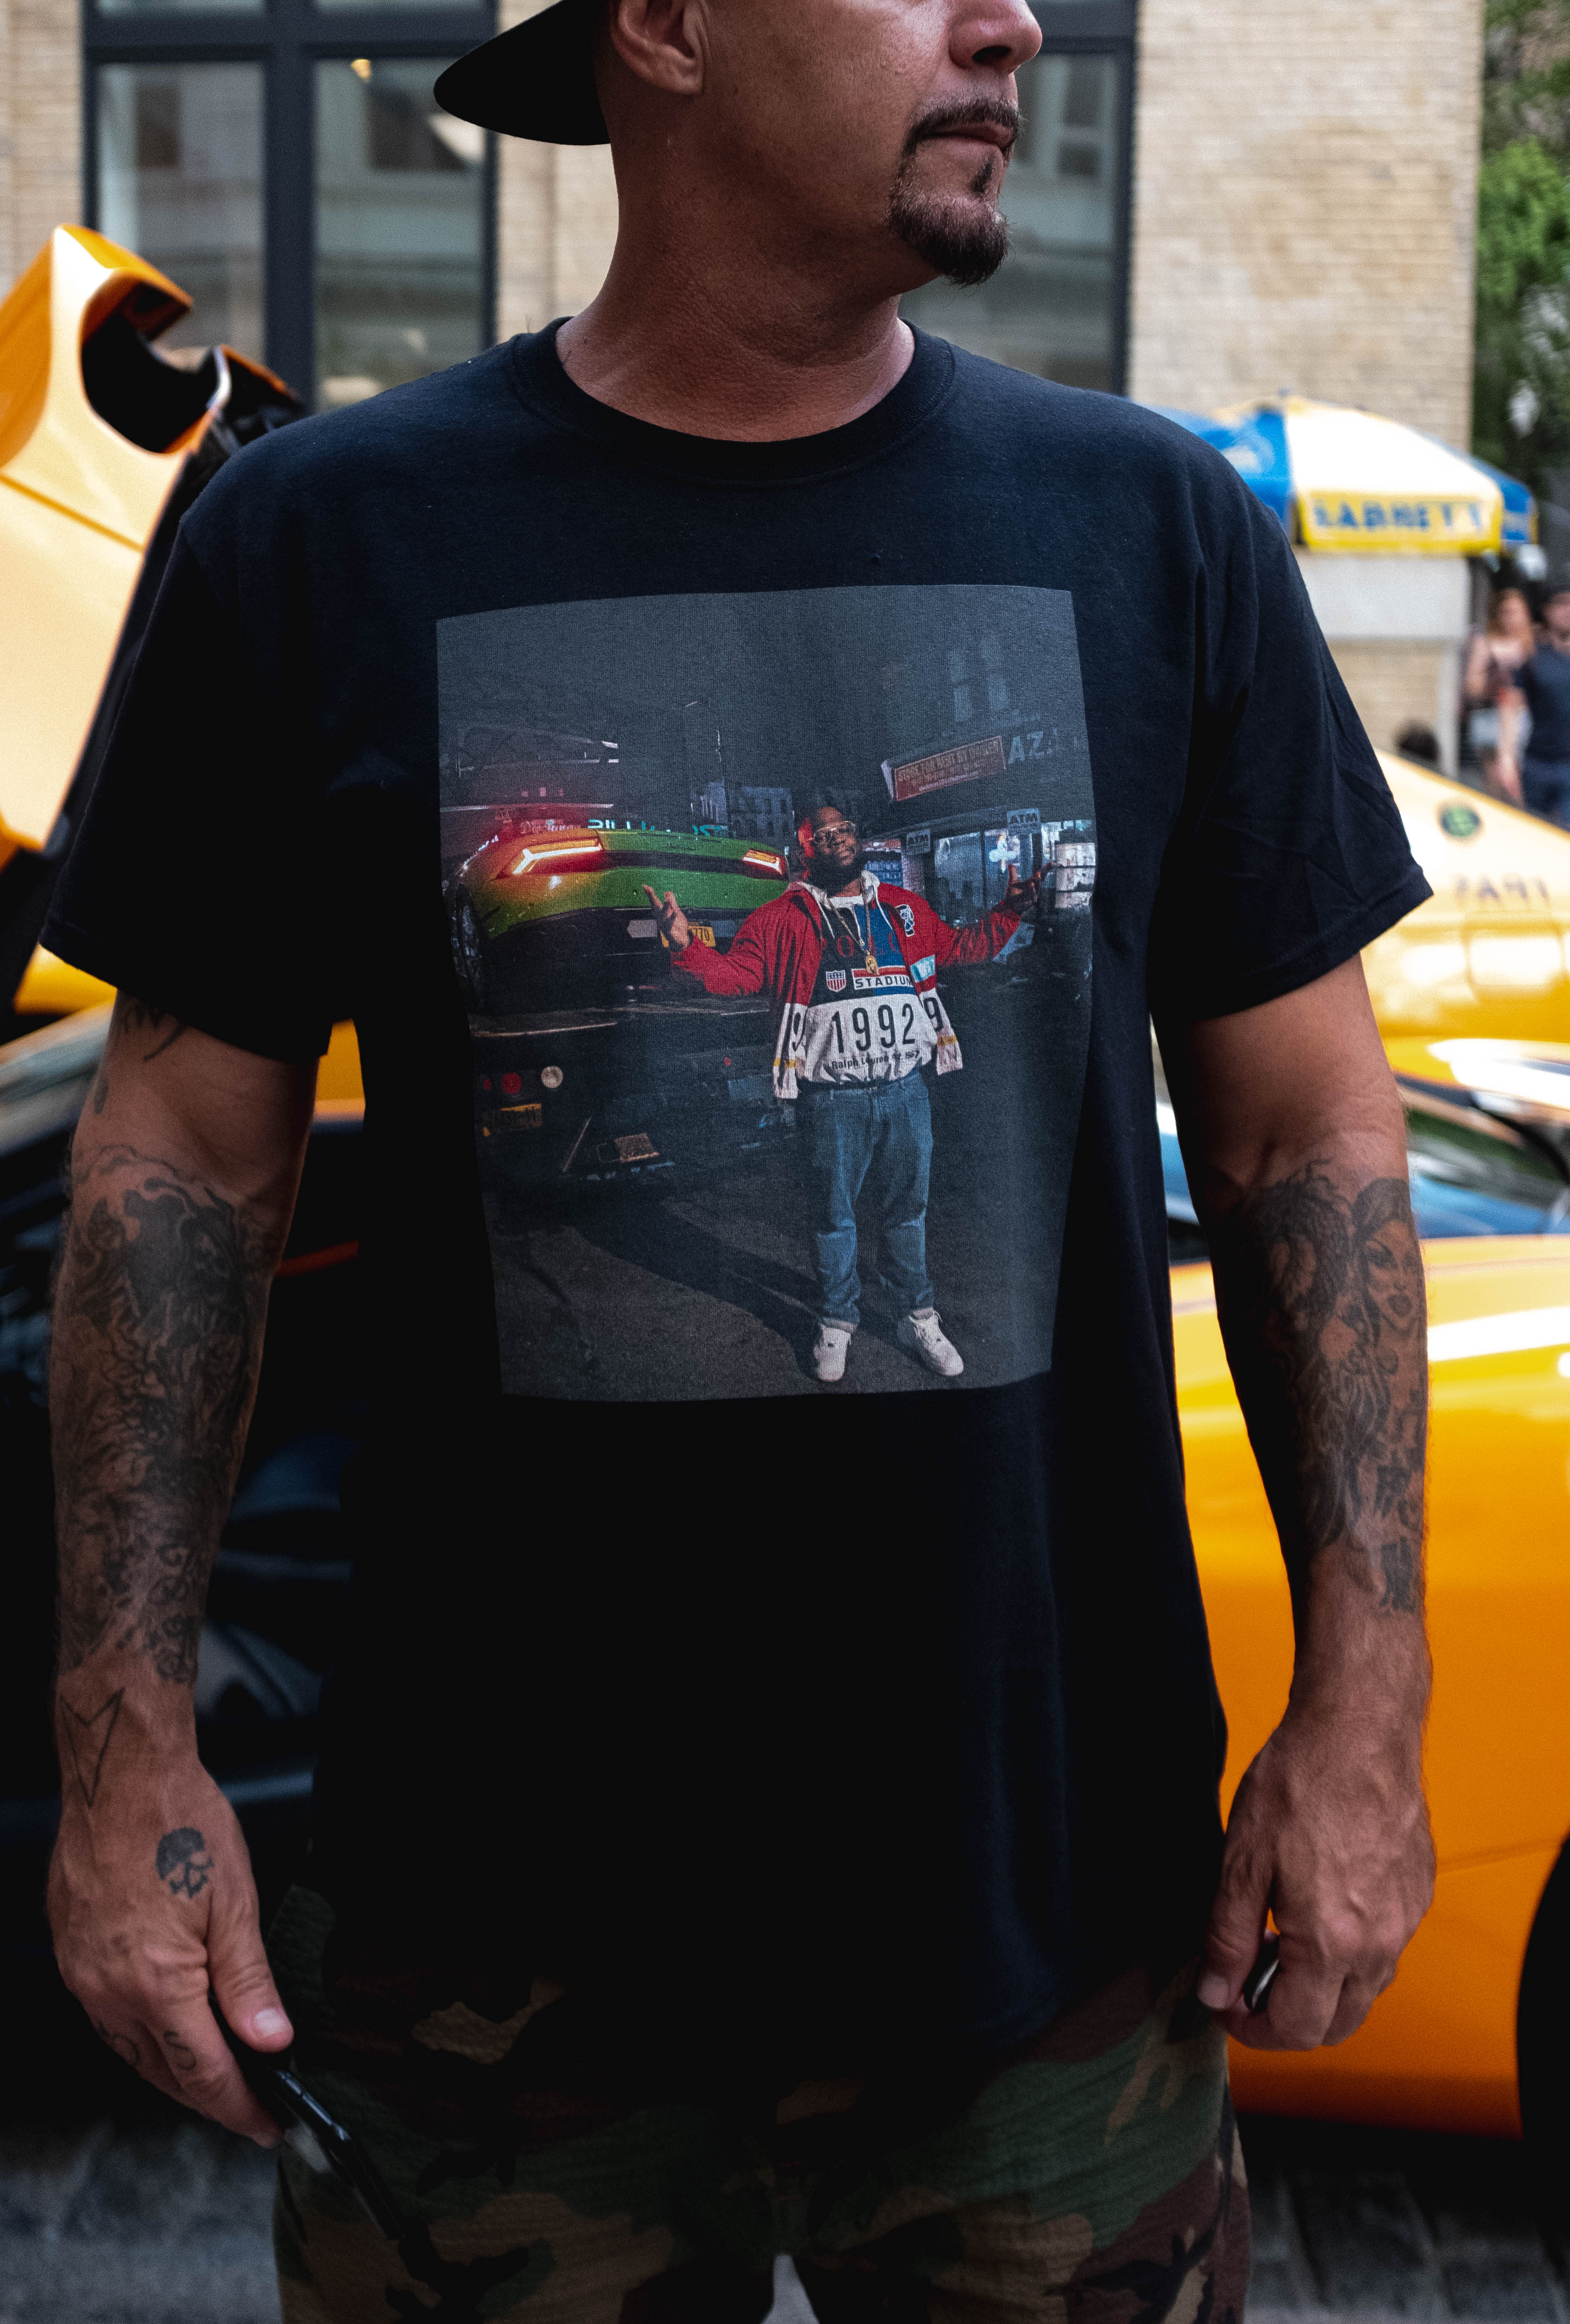 MEMBERS ONLY - Lambo T-Shirt Size Large